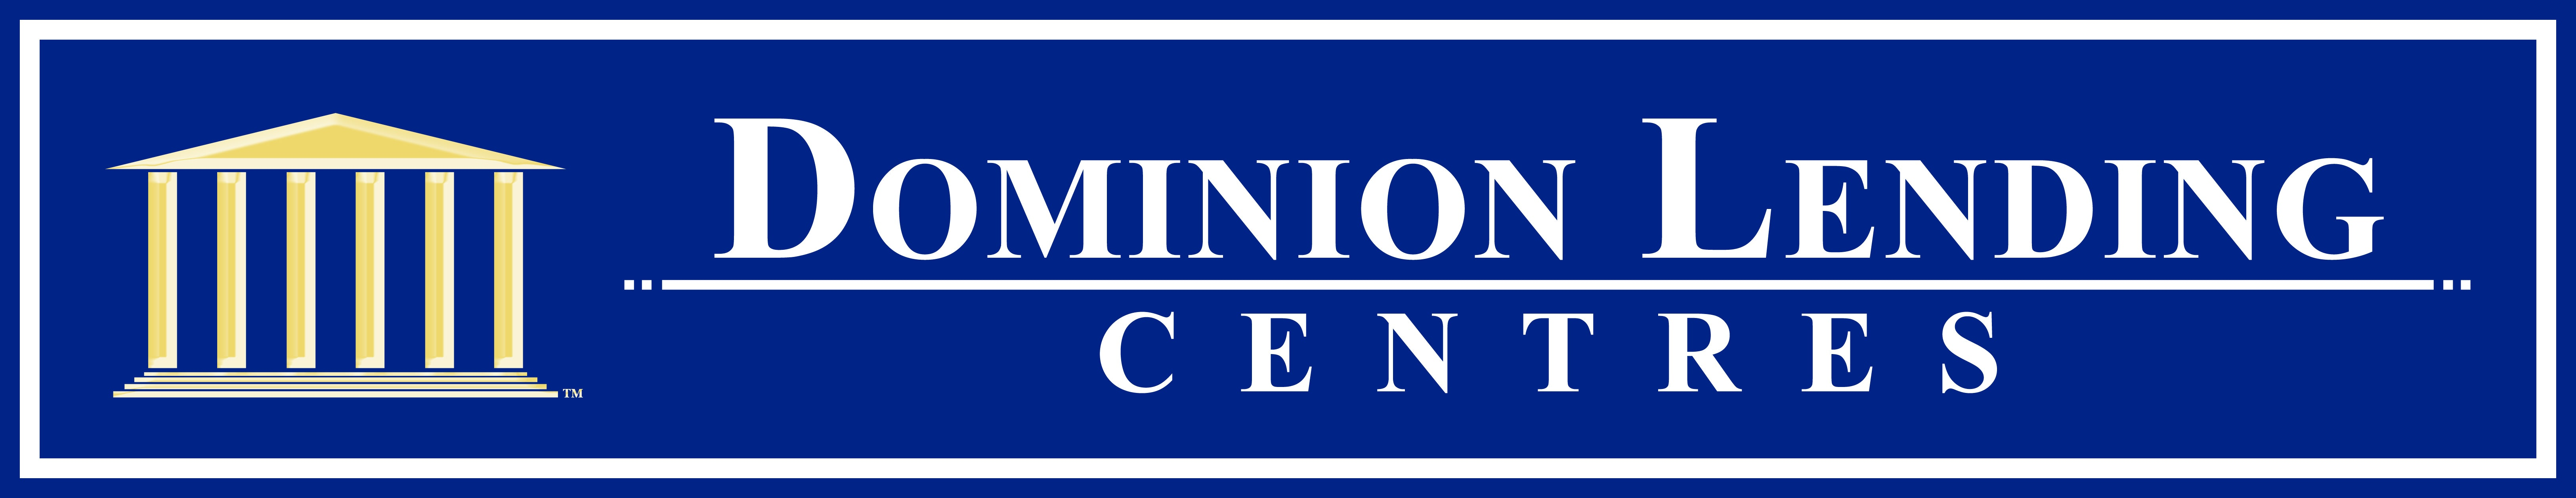 Dominion Lending Presents